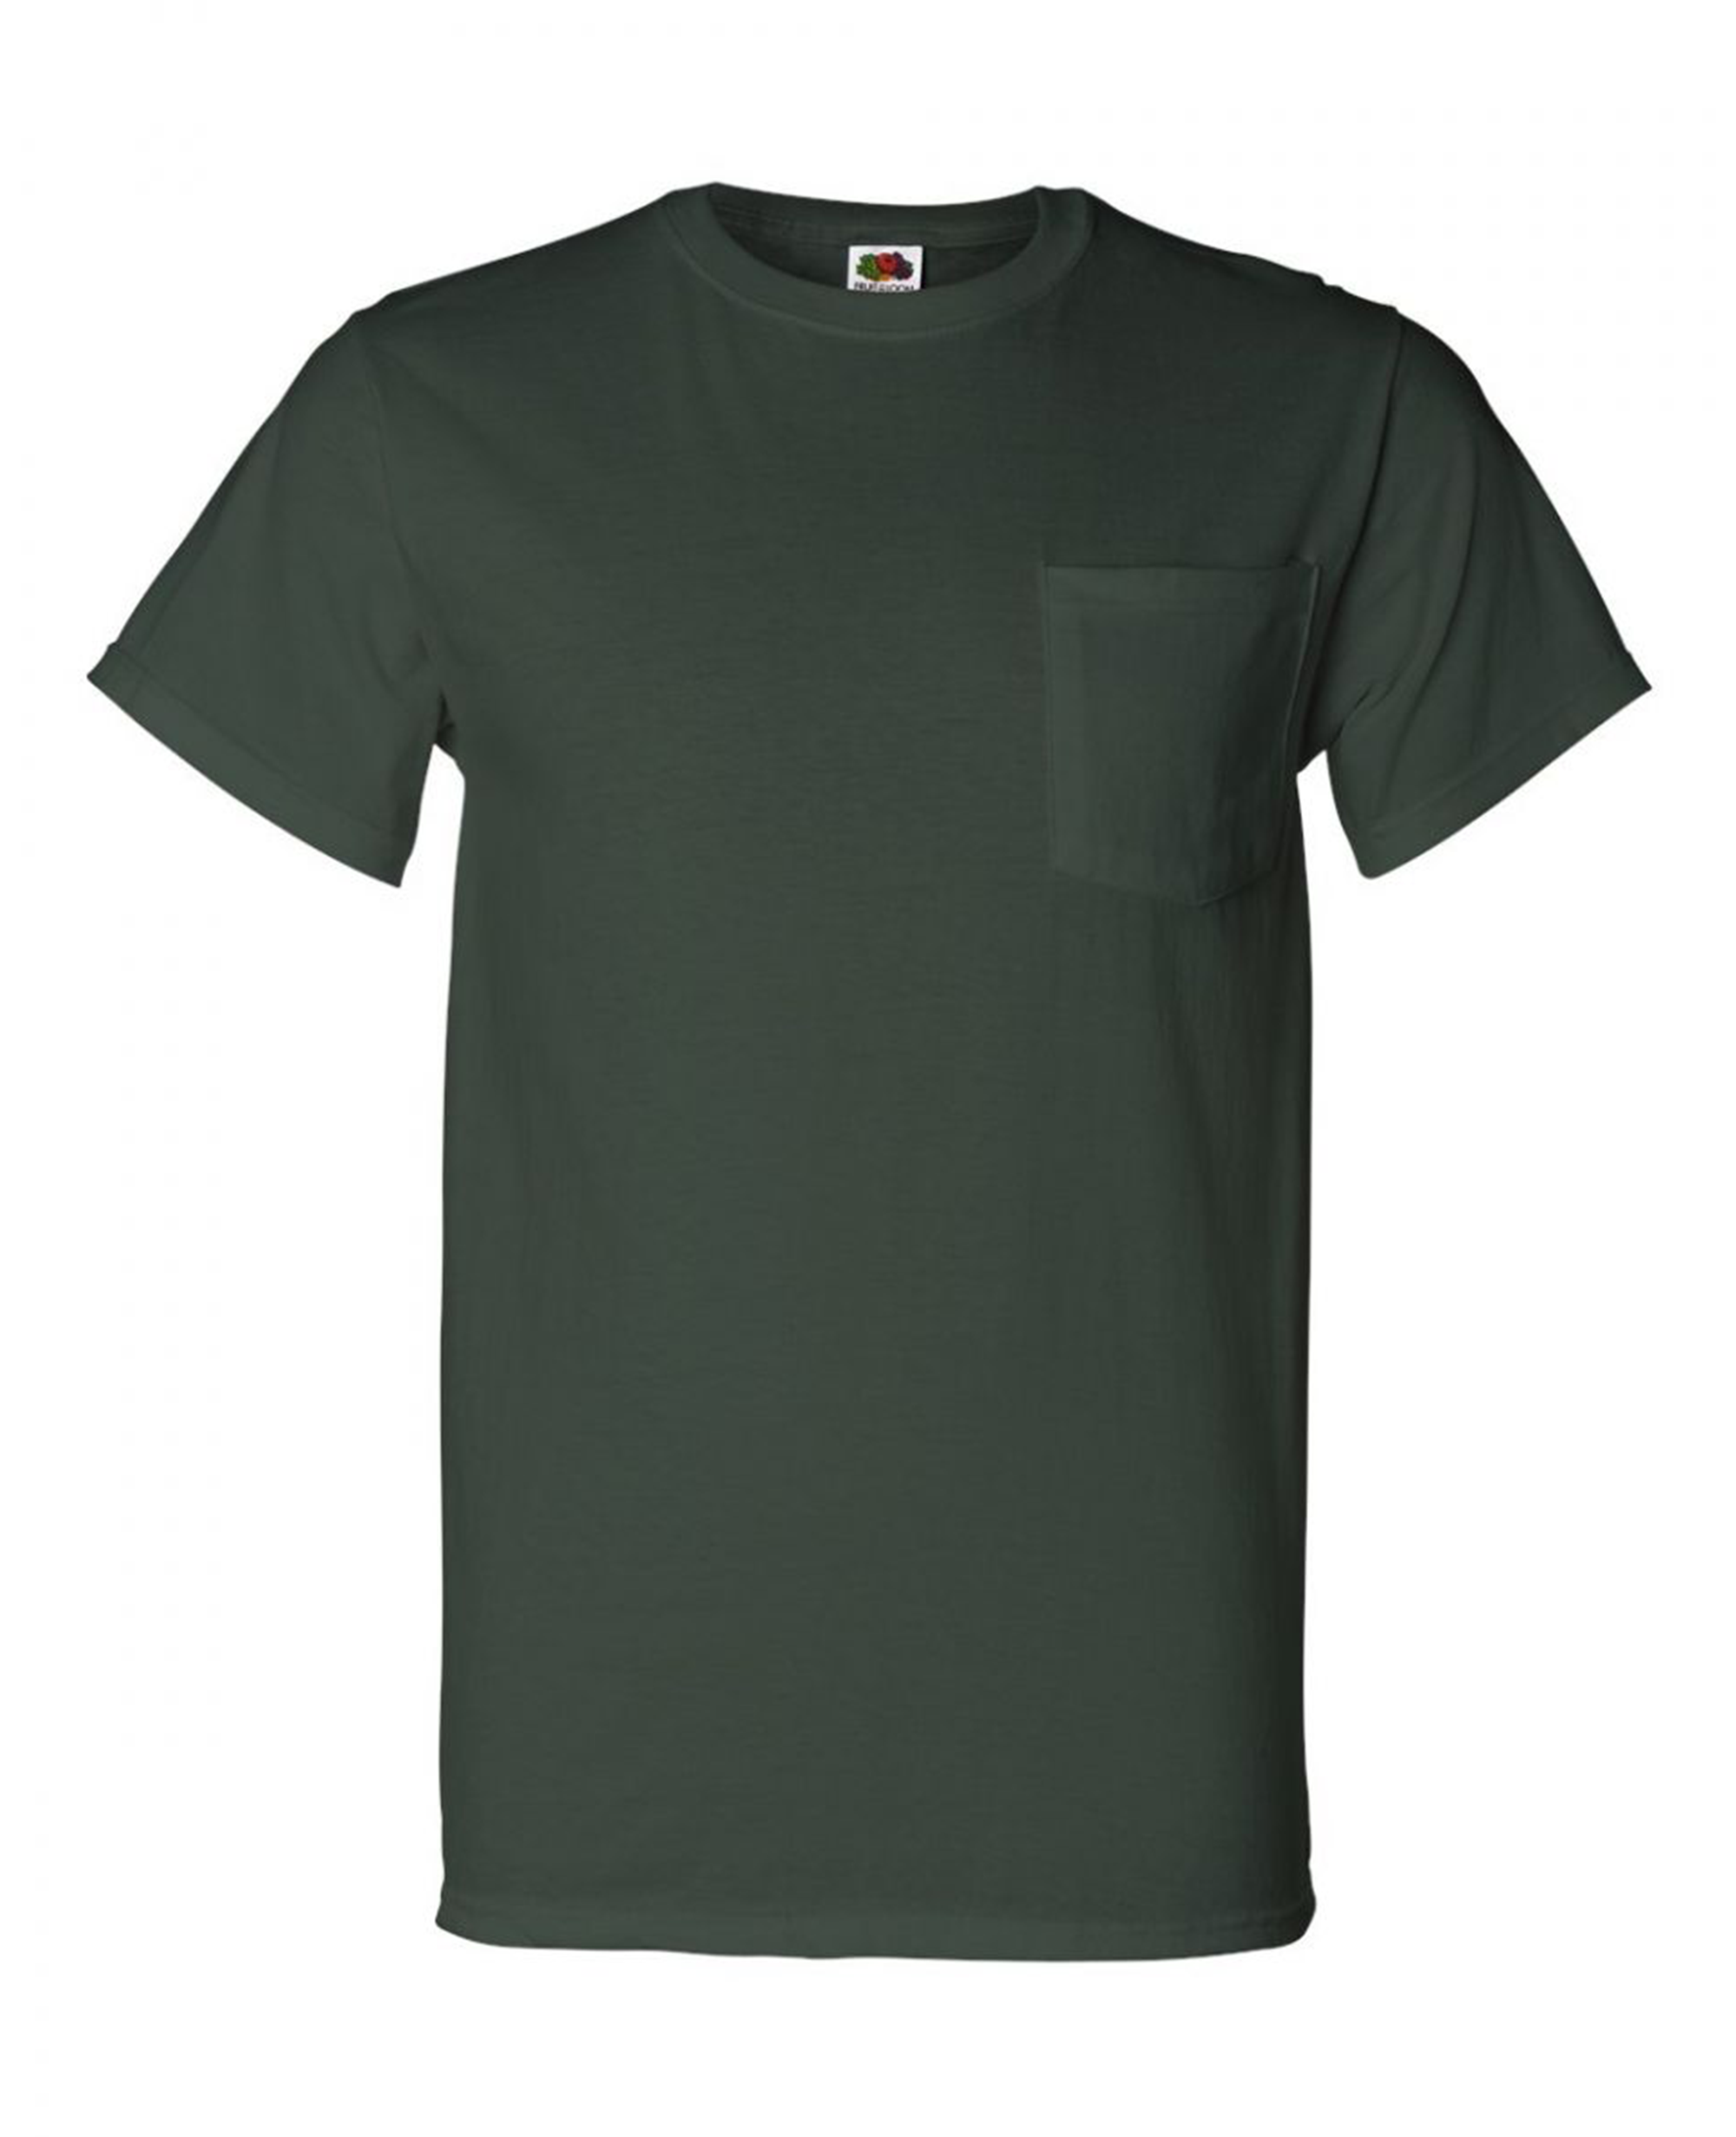 Chroma series Pocket T-shirt - T-Shirts - Fruit of the loom - BRANMA